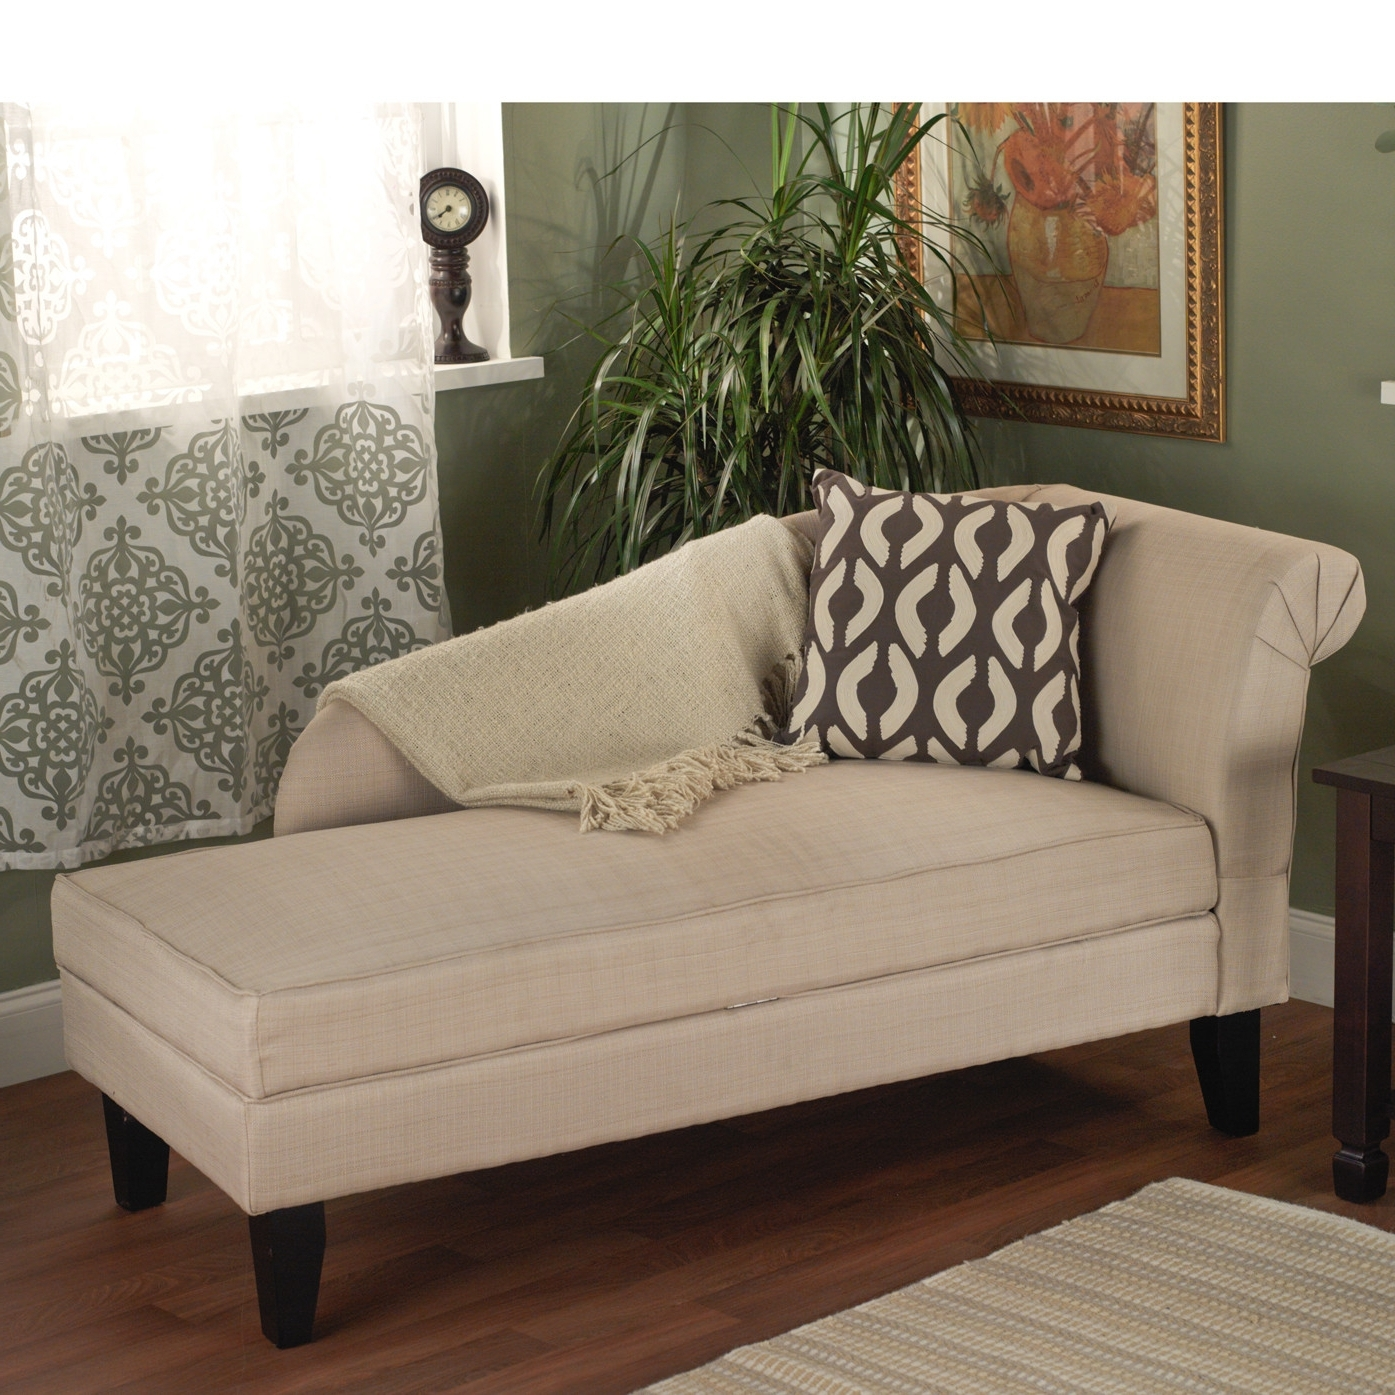 Most Recent Chaise Lounge Chairs With Storage In Indoor Chaise Lounge Chairs With Storage • Lounge Chairs Ideas (View 11 of 15)